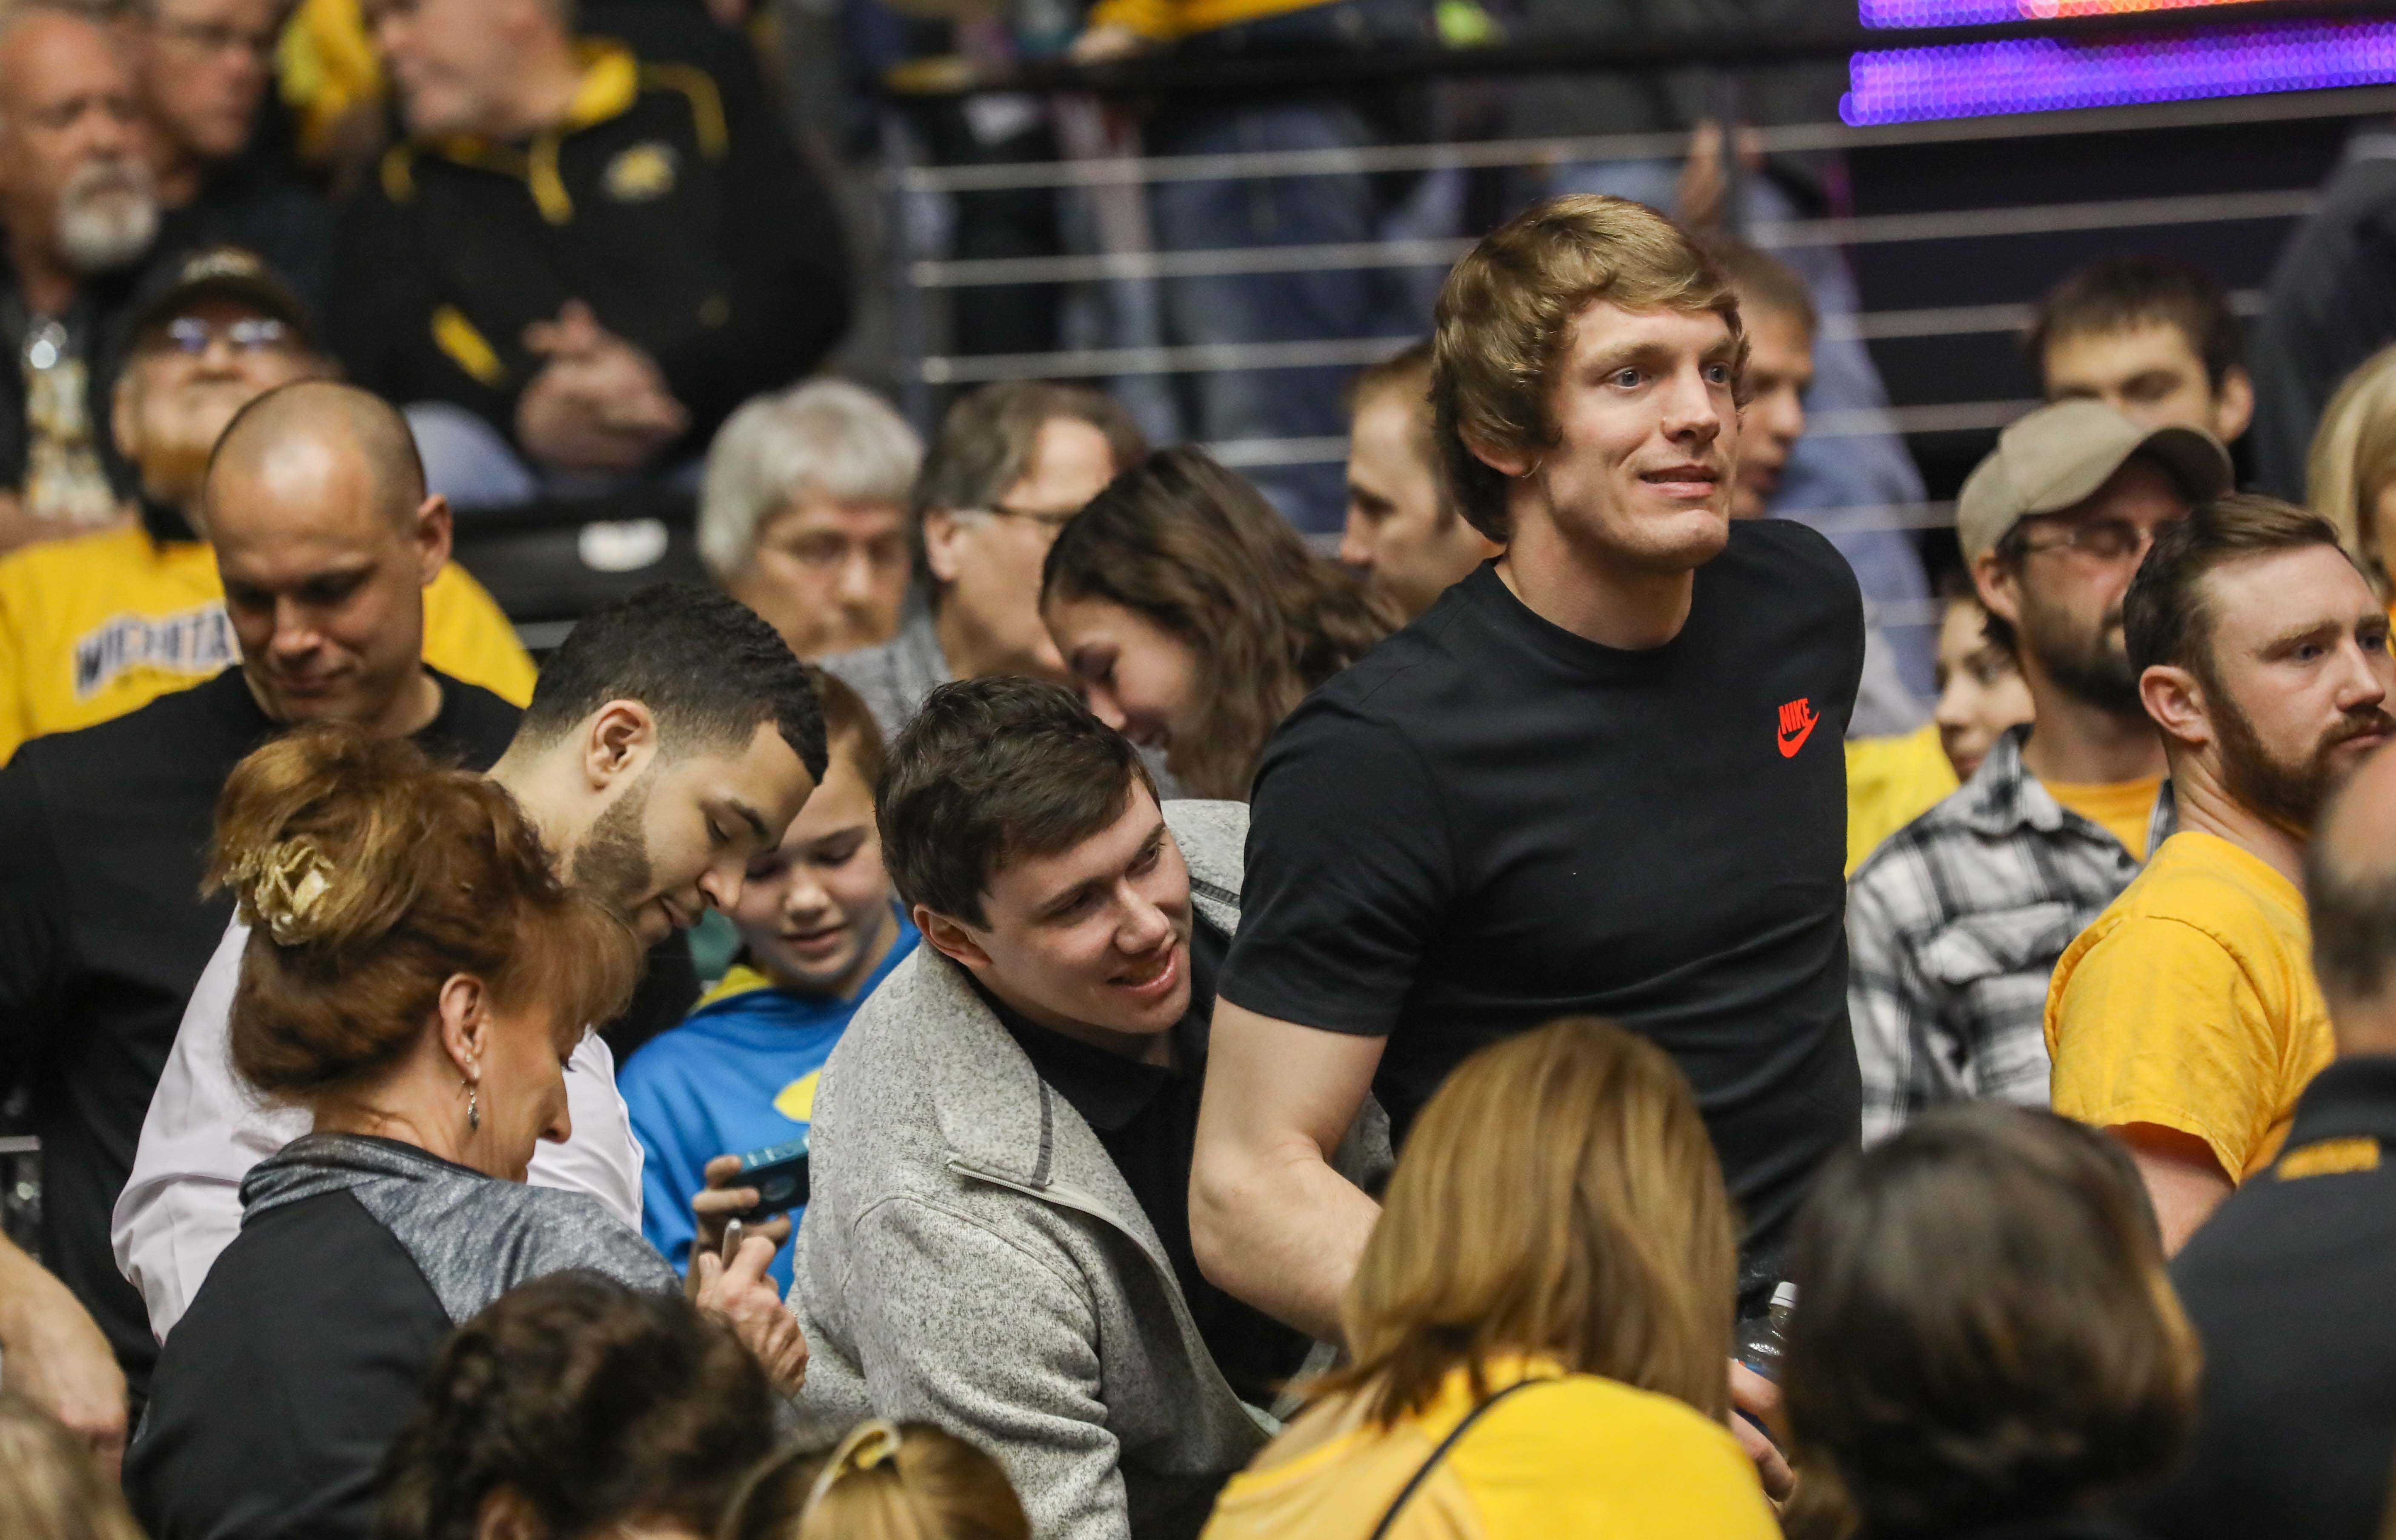 Former Wichita State players Ron Baker (right), Evan Wessel (center), and Fred Van Vleet (left) were in the stands for Wichita State's match-up against Northern Iowa. Baker and Van Vleet are currently playing in the NBA. (Feb. 18, 2017)